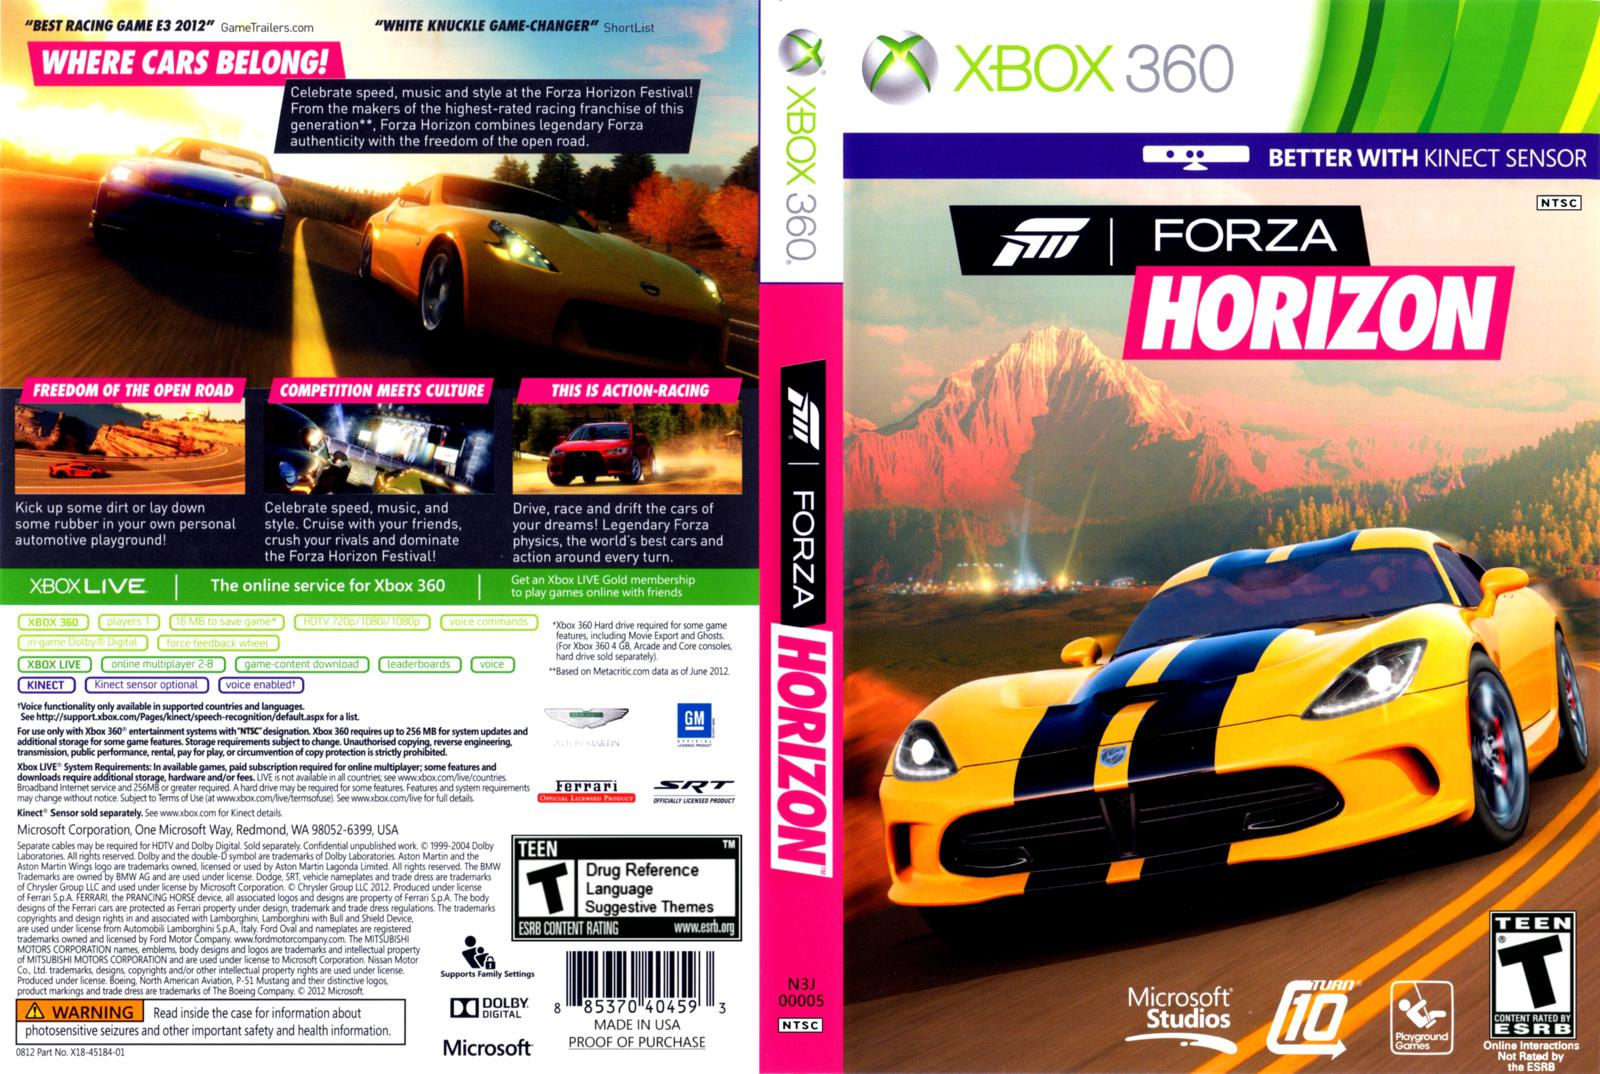 forza horizon xbox 360 gamecover download de capas para jogos ps4 xbox one pc xbox 360 e ps3. Black Bedroom Furniture Sets. Home Design Ideas